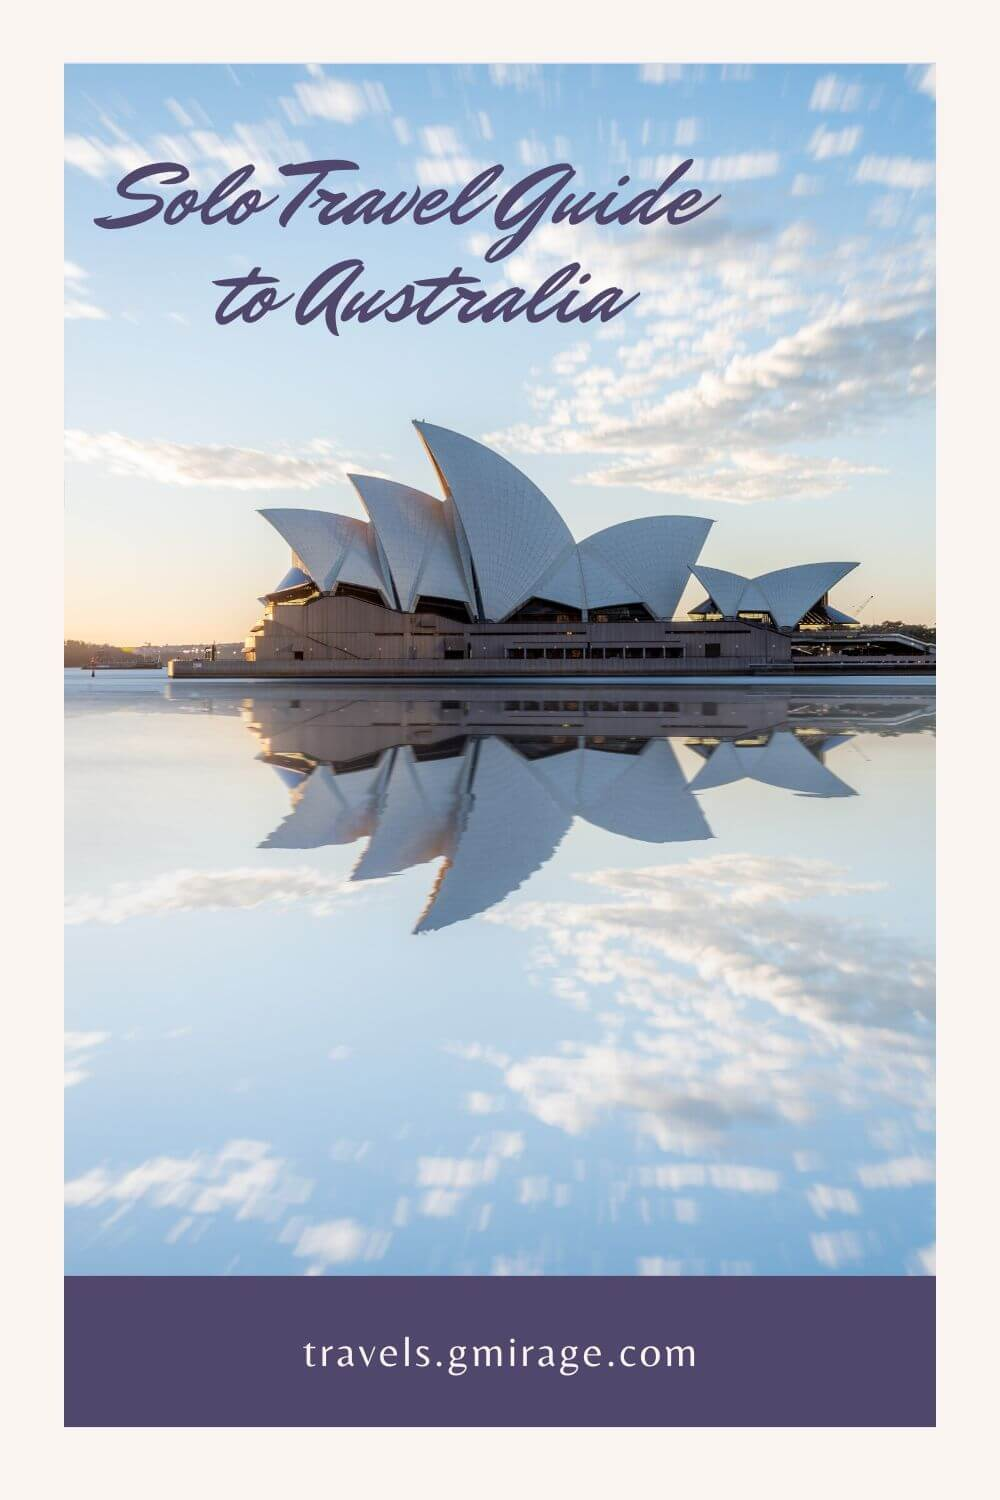 Solo Travel Guide to Australia